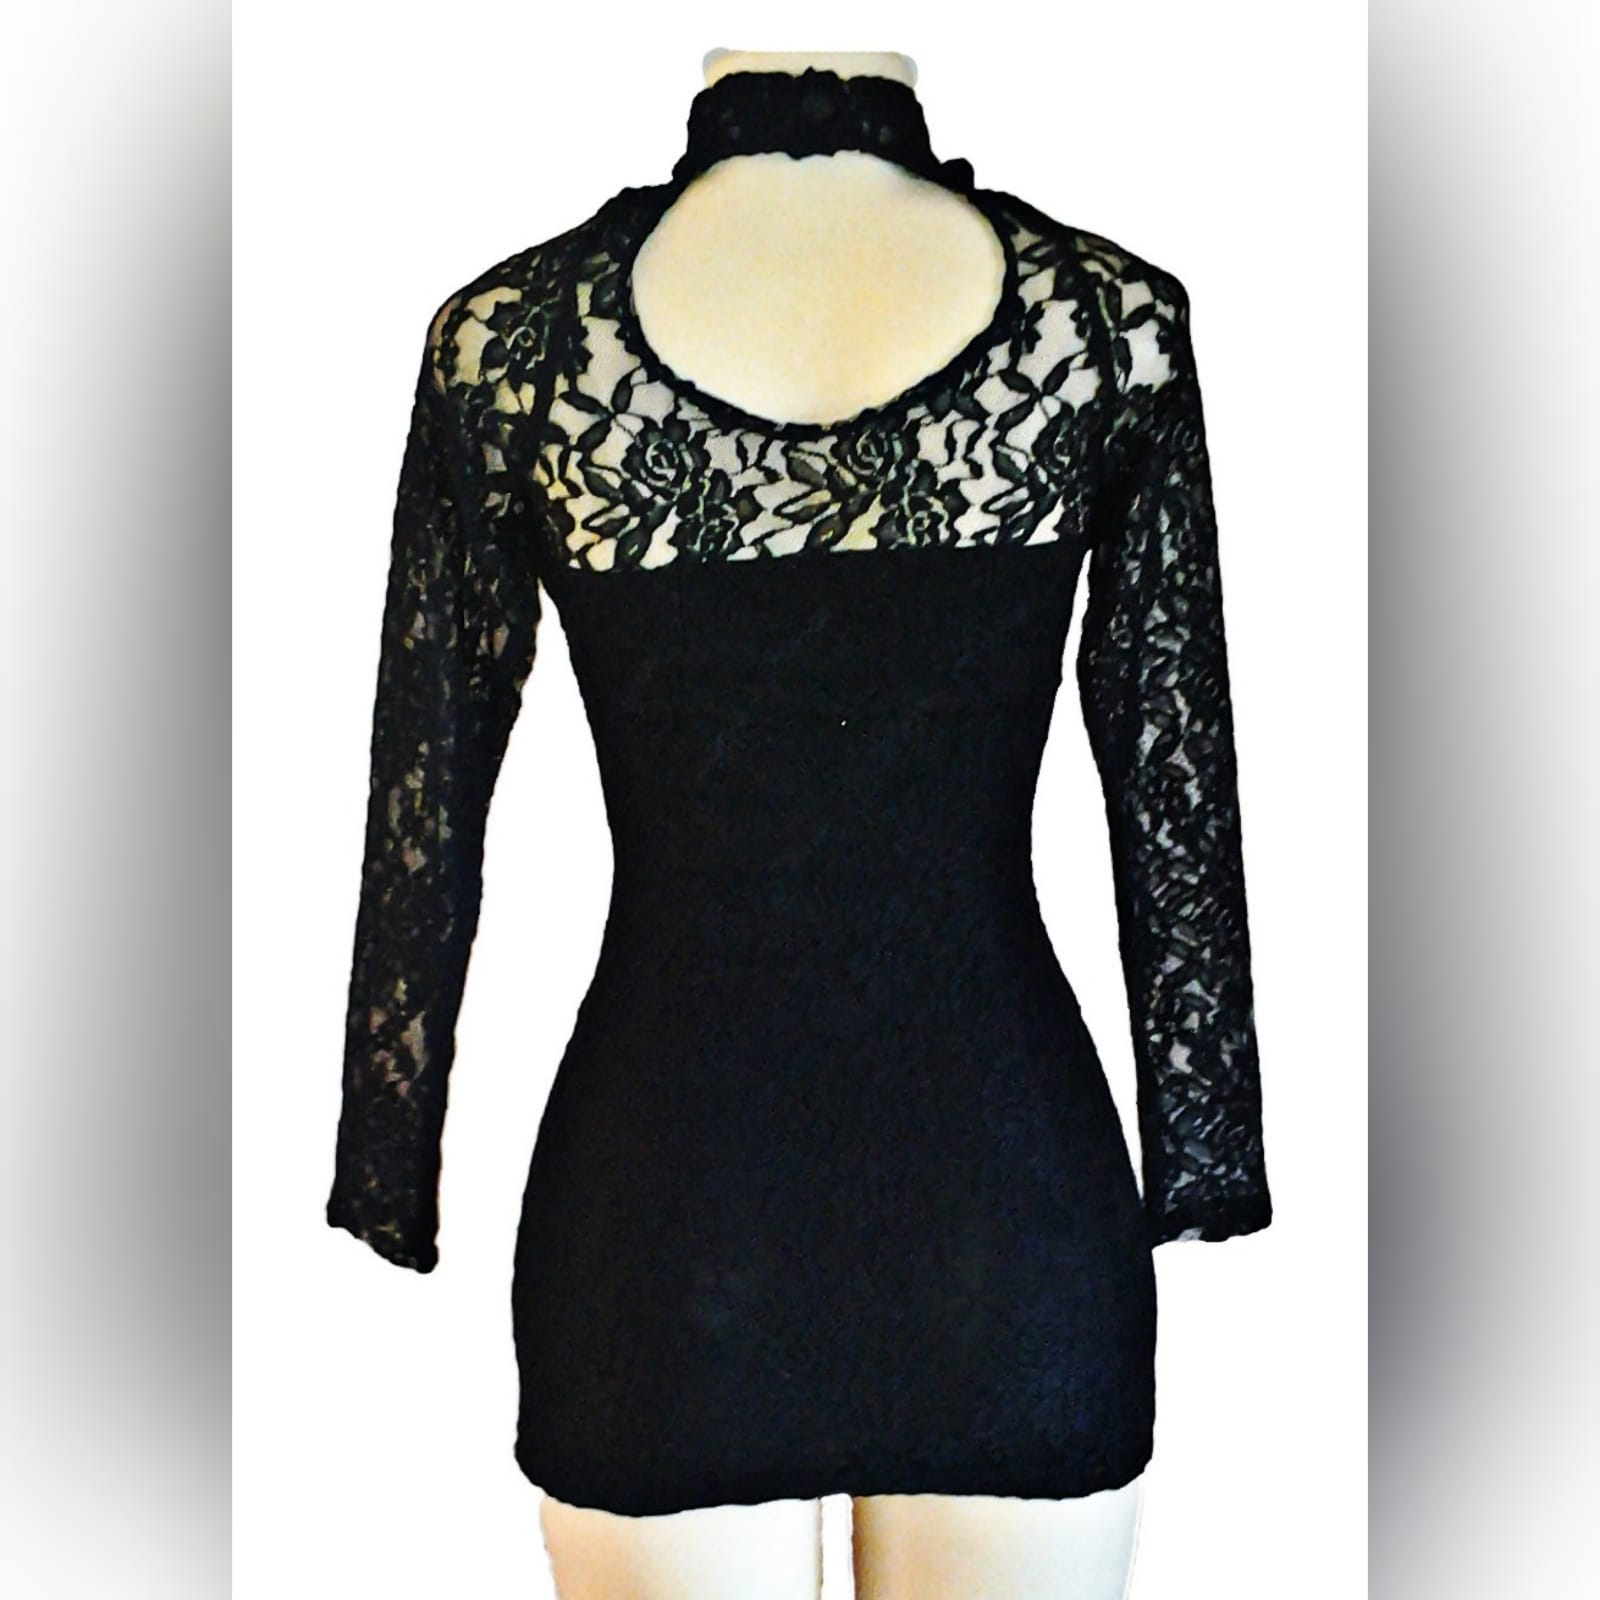 Mini lace black party dress 4 mini lace black party dress with a sheer choker neckline and long lace sleeves